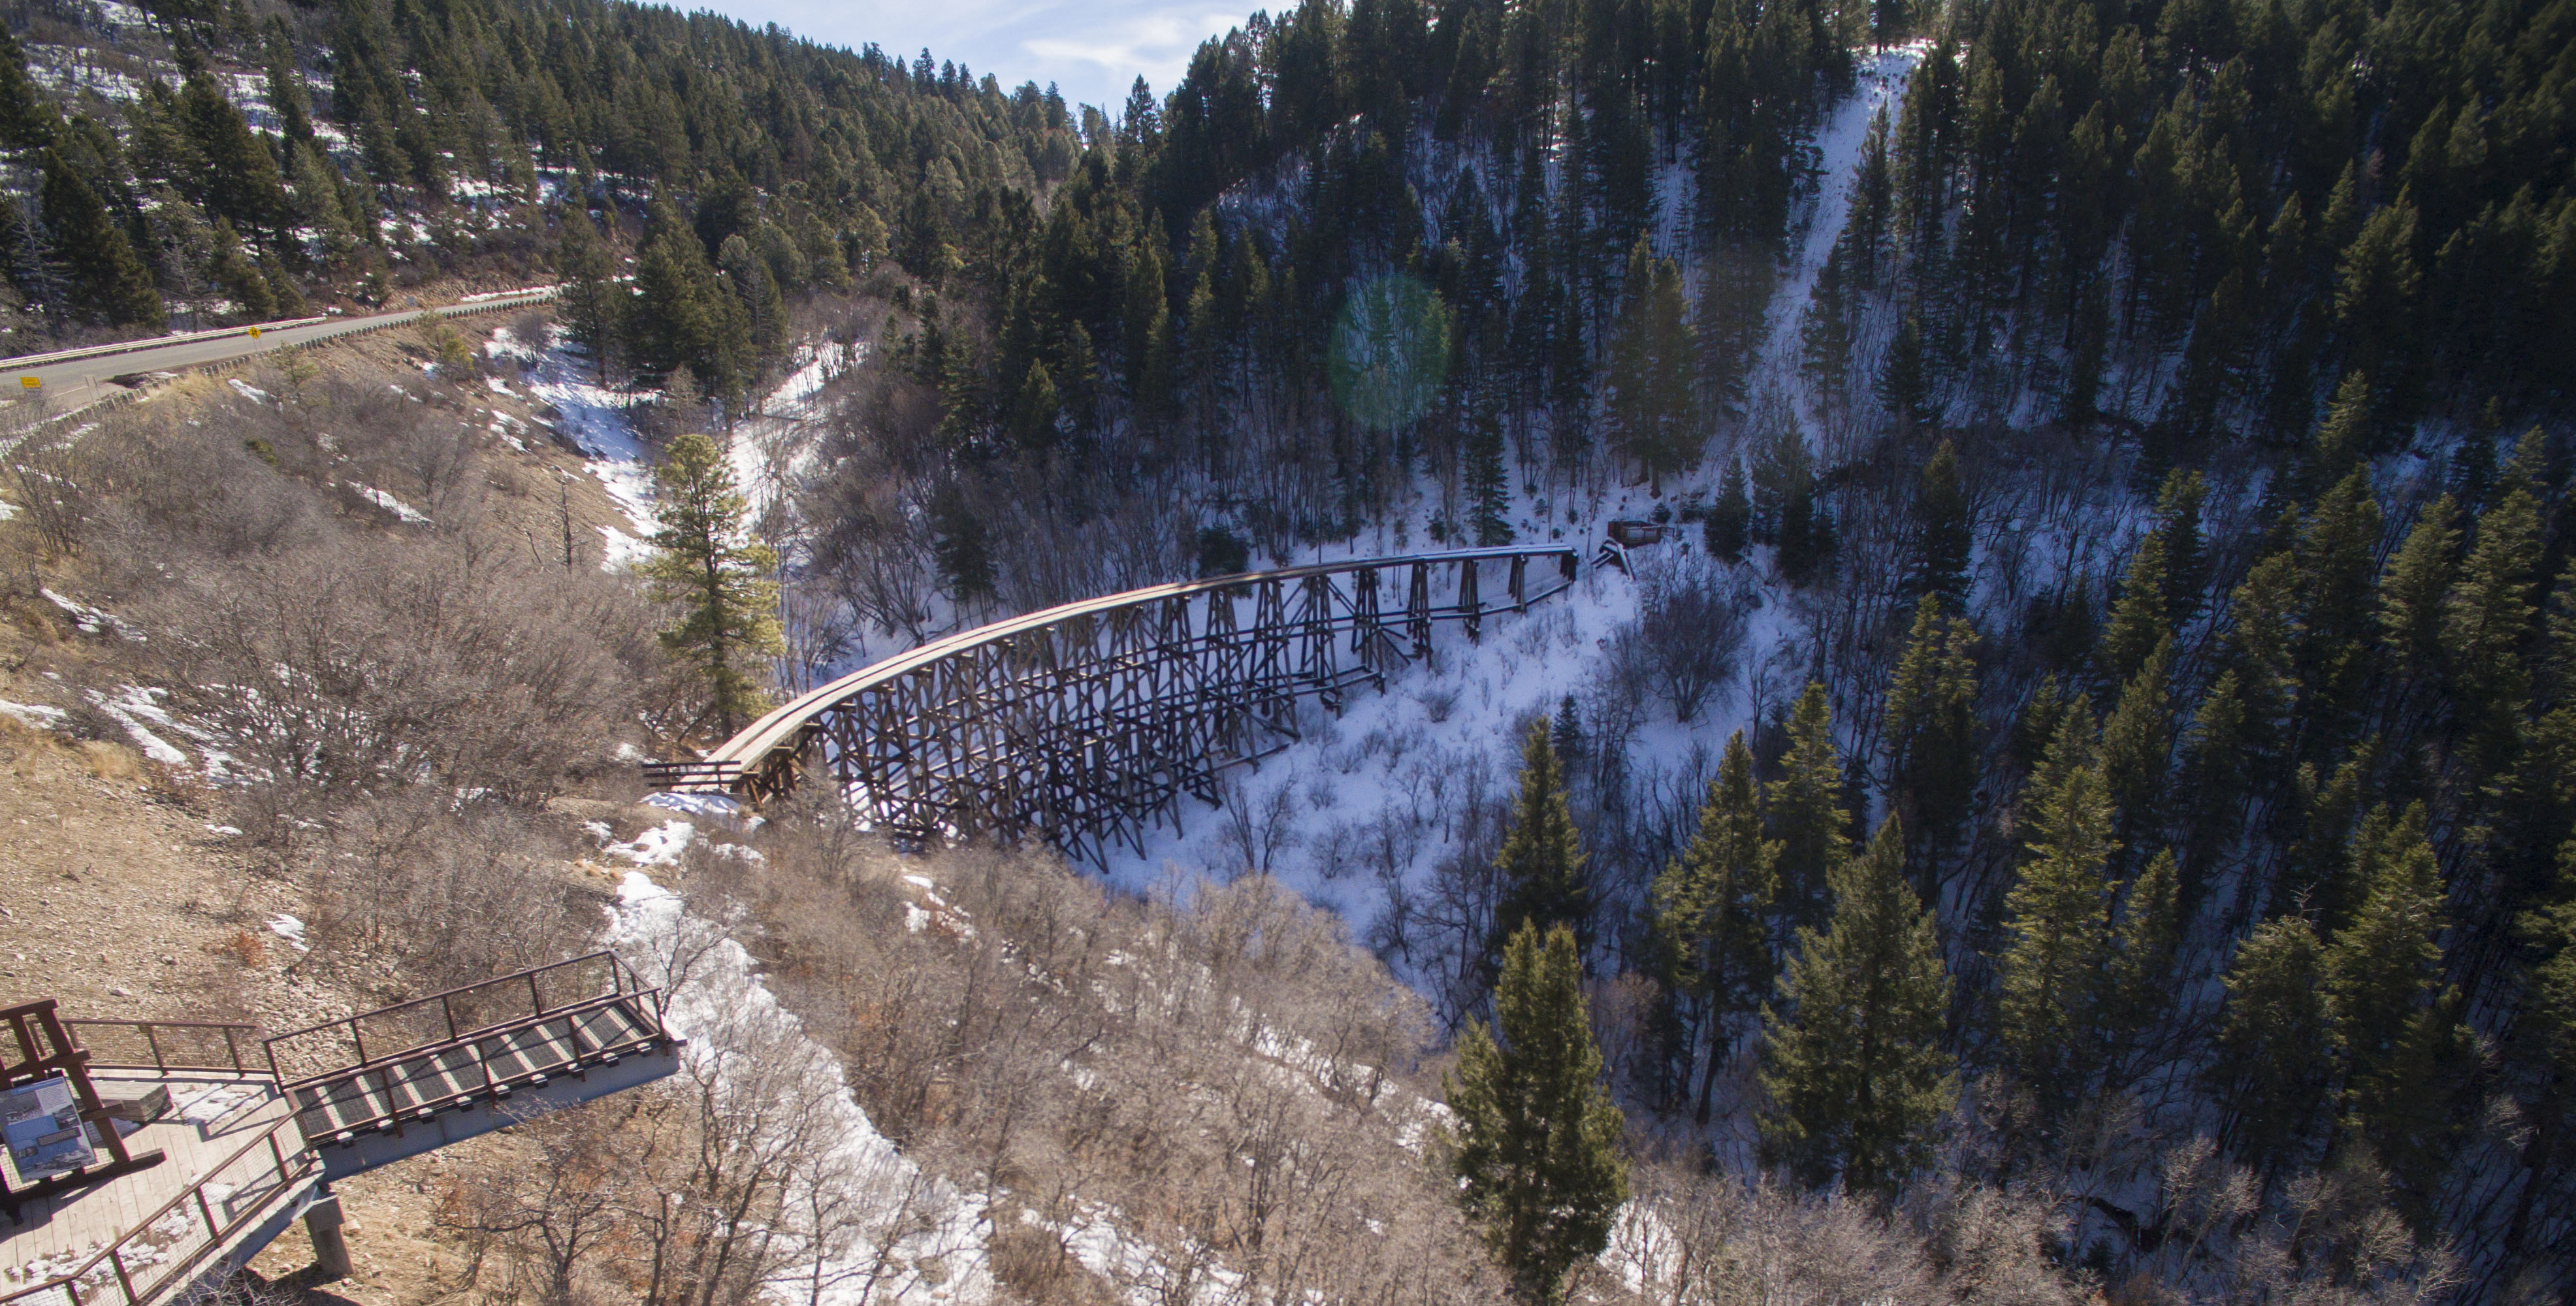 160124P3PDrone_Cloudcroft_Tressel